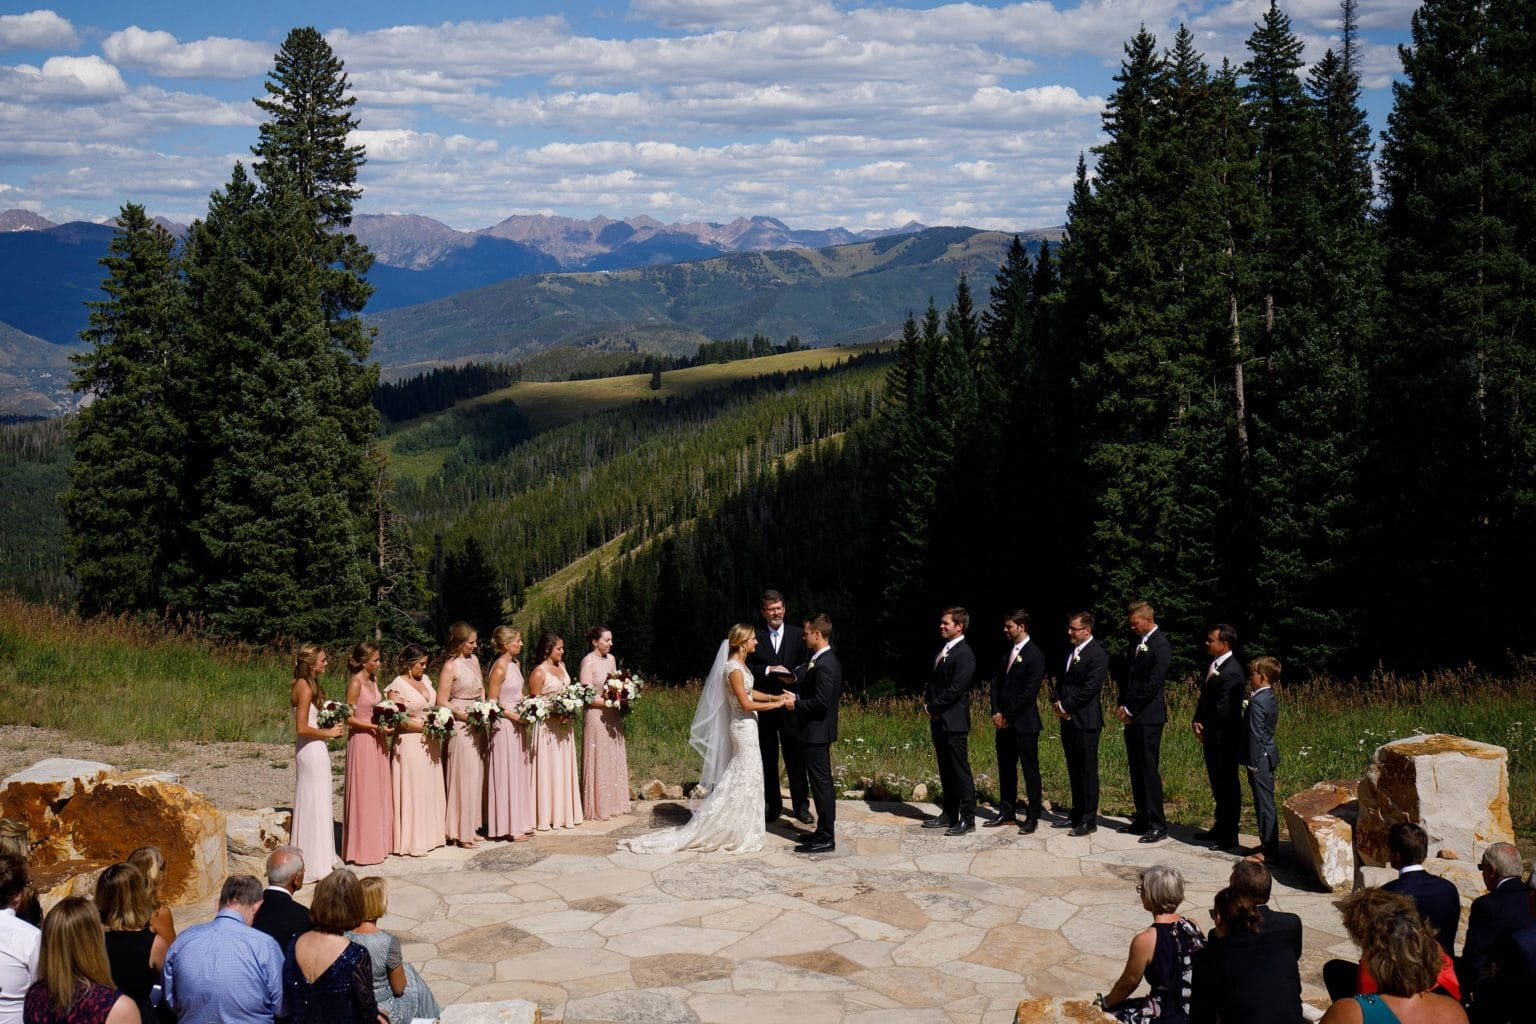 Wedding ceremony at the Beaver Creek wedding deck on a sunny September day